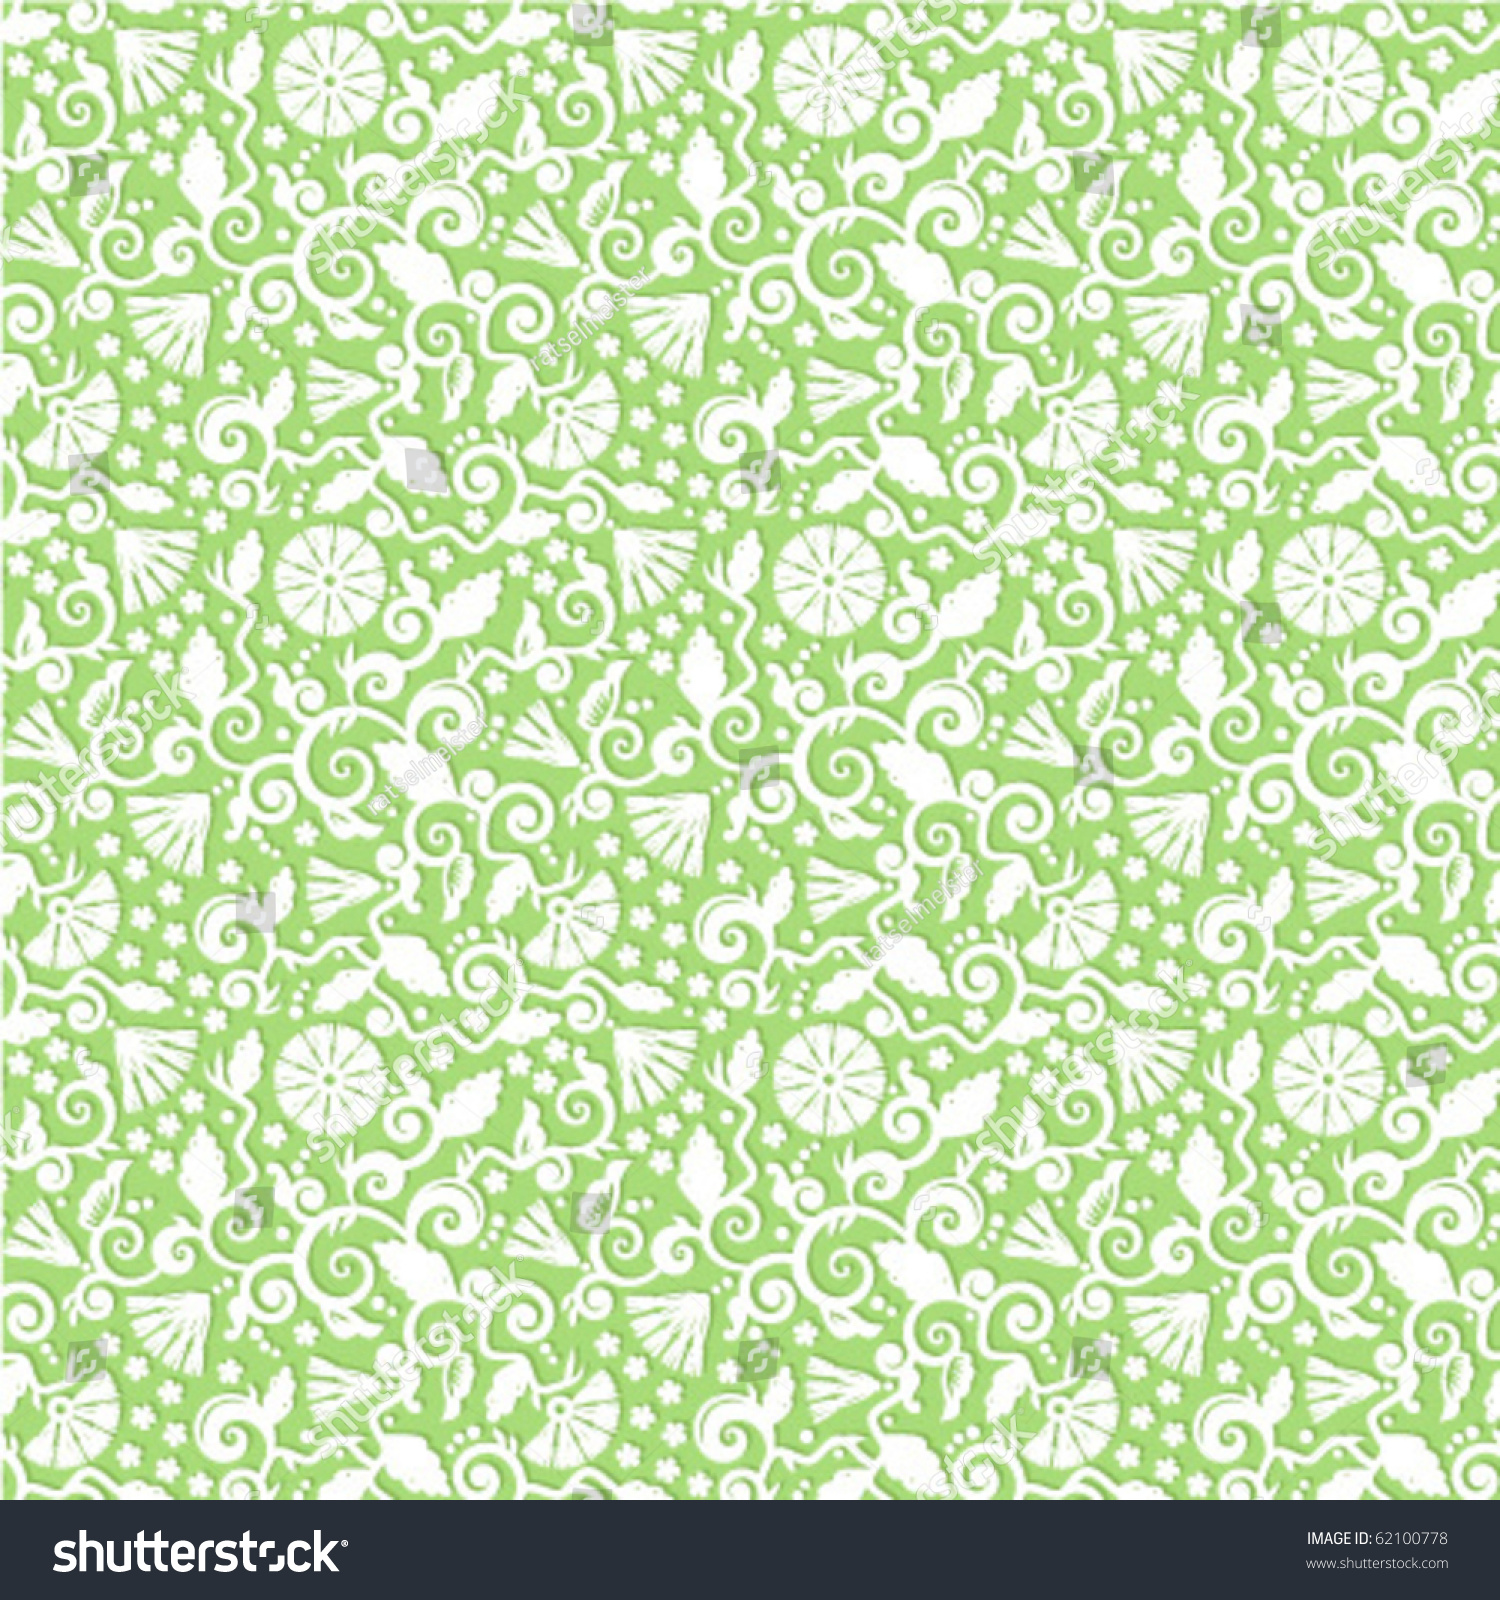 Seamless Light Green White Floral Pattern Stock Vector ...